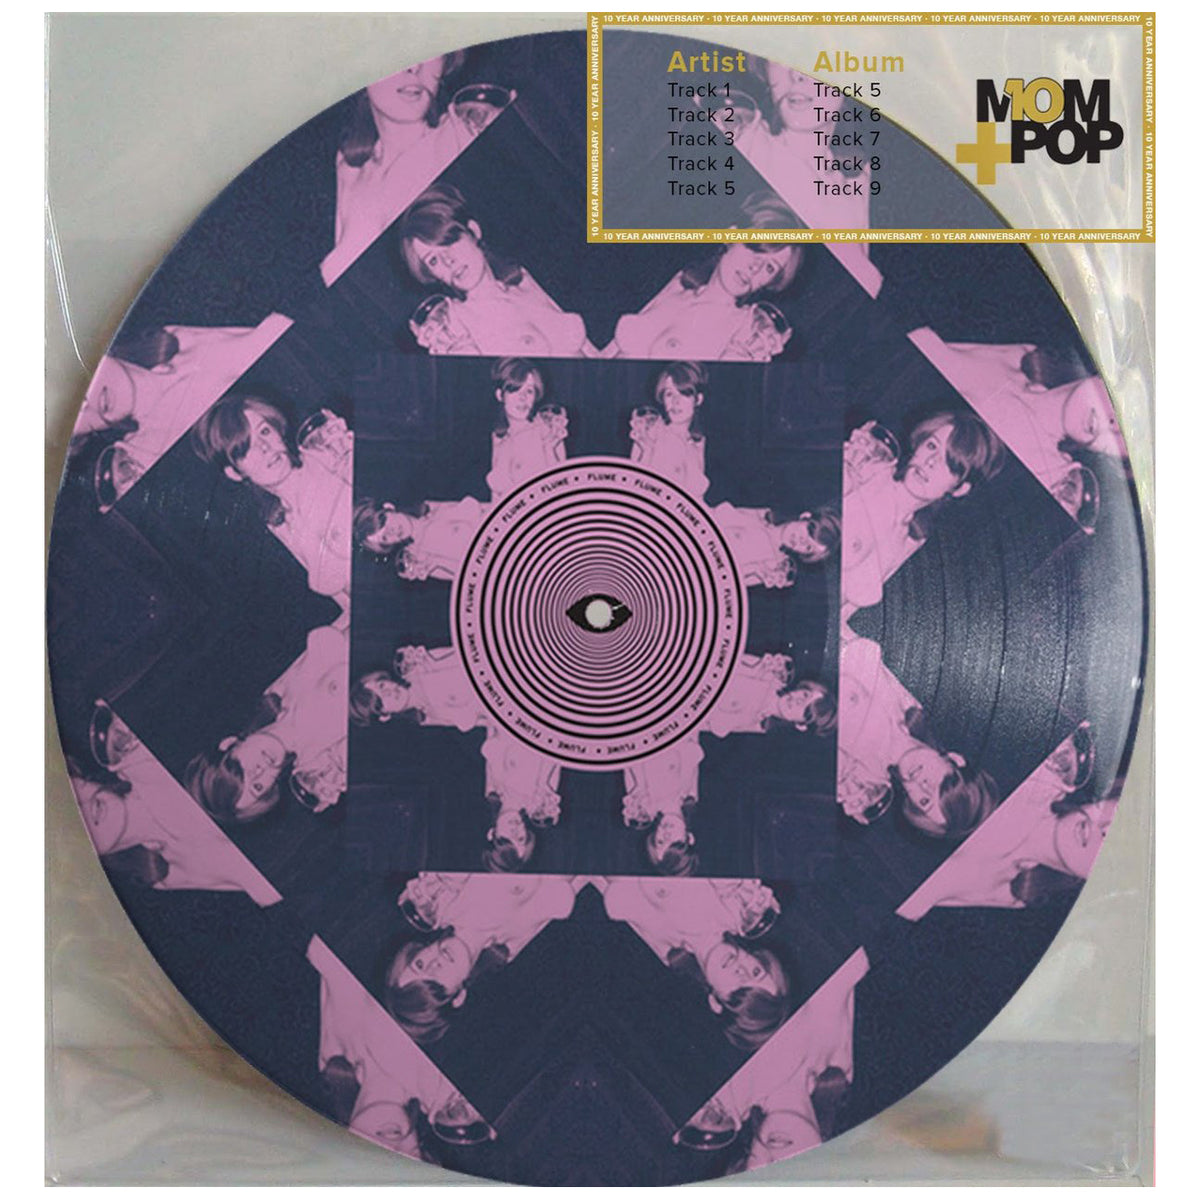 Flume: Flume (Pic Disc) Vinyl LP (Record Store Day)